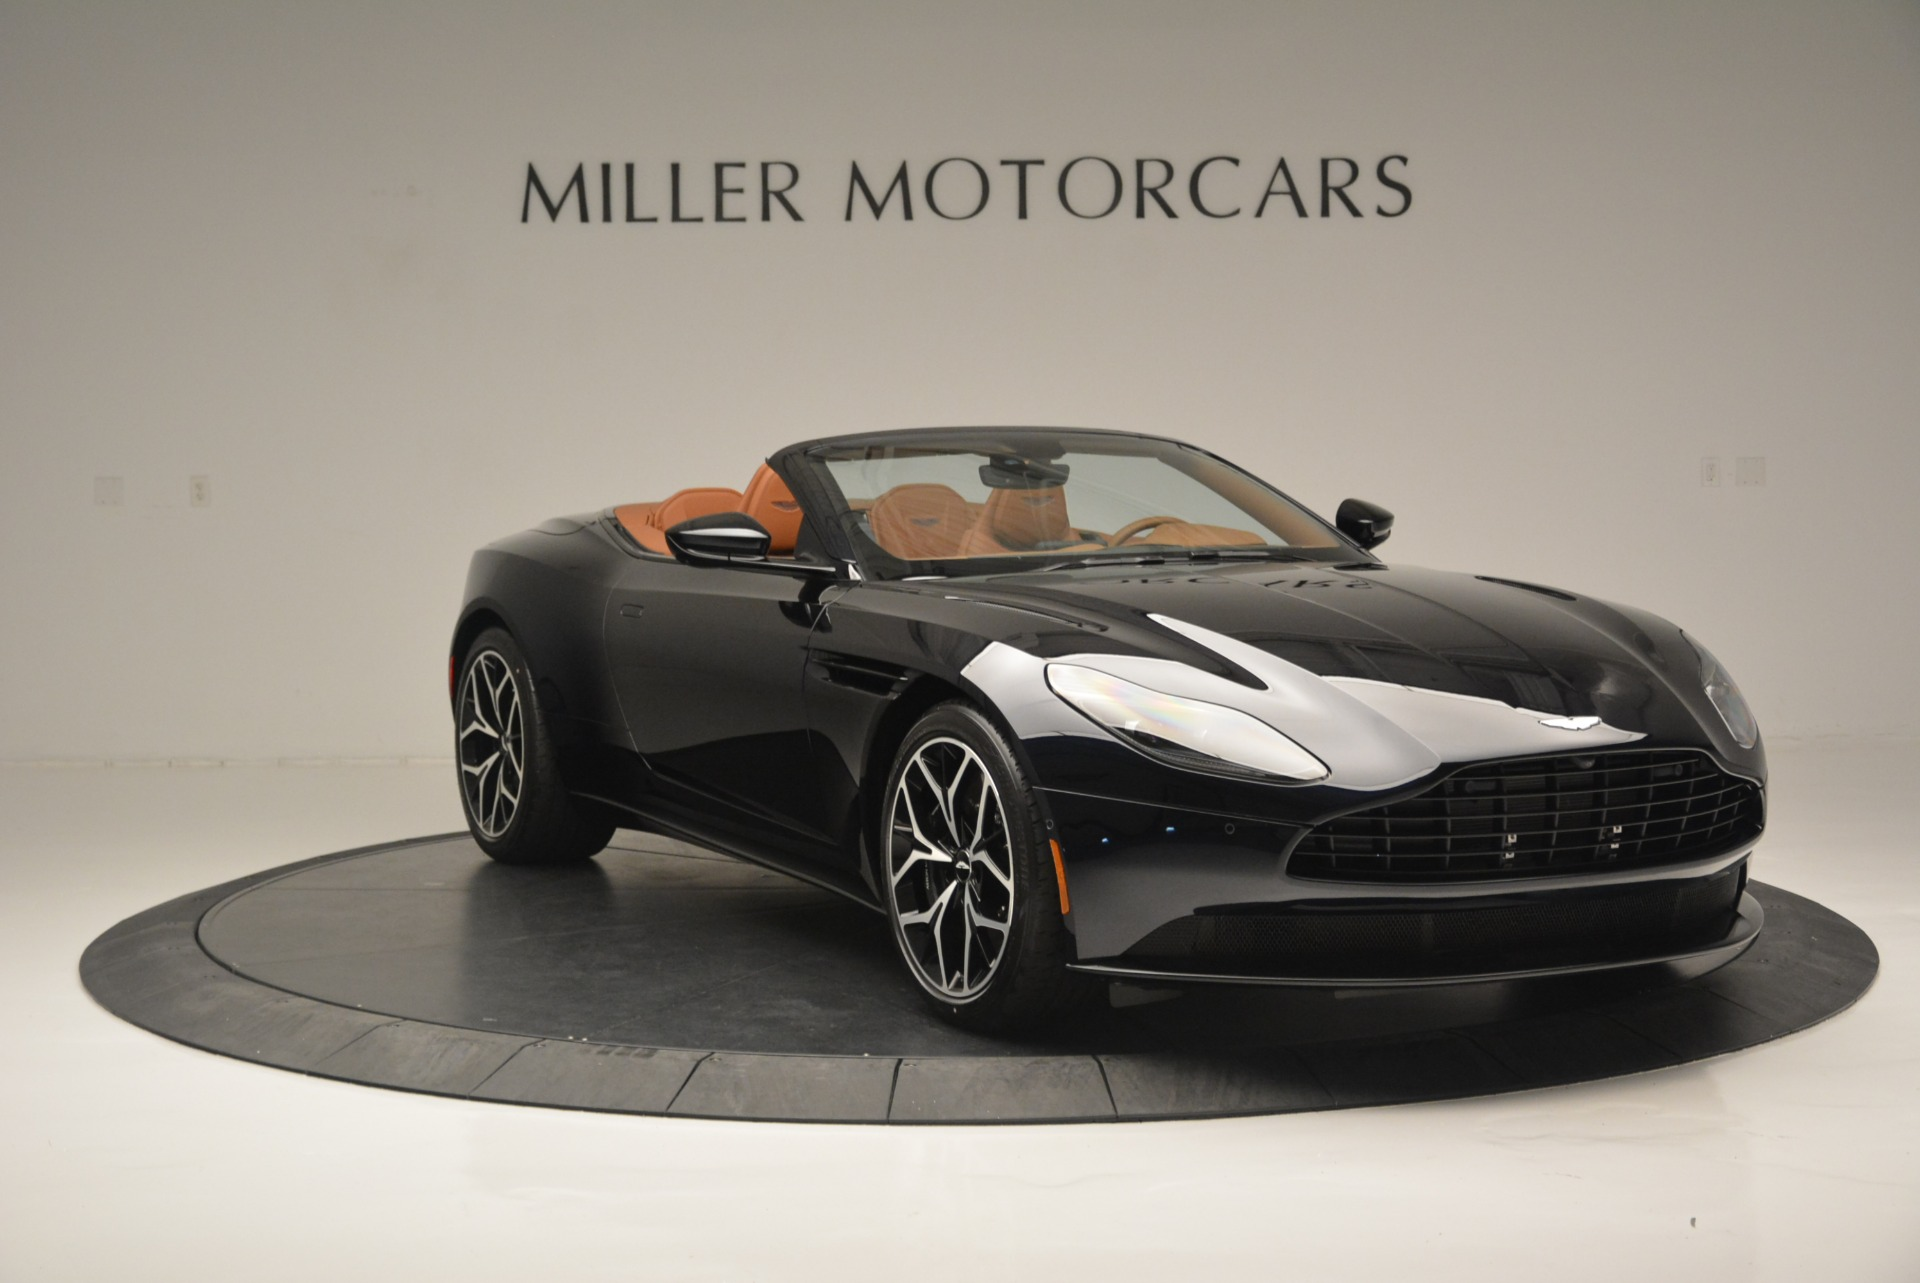 New 2019 Aston Martin DB11 Volante Volante For Sale In Greenwich, CT 2450_p11